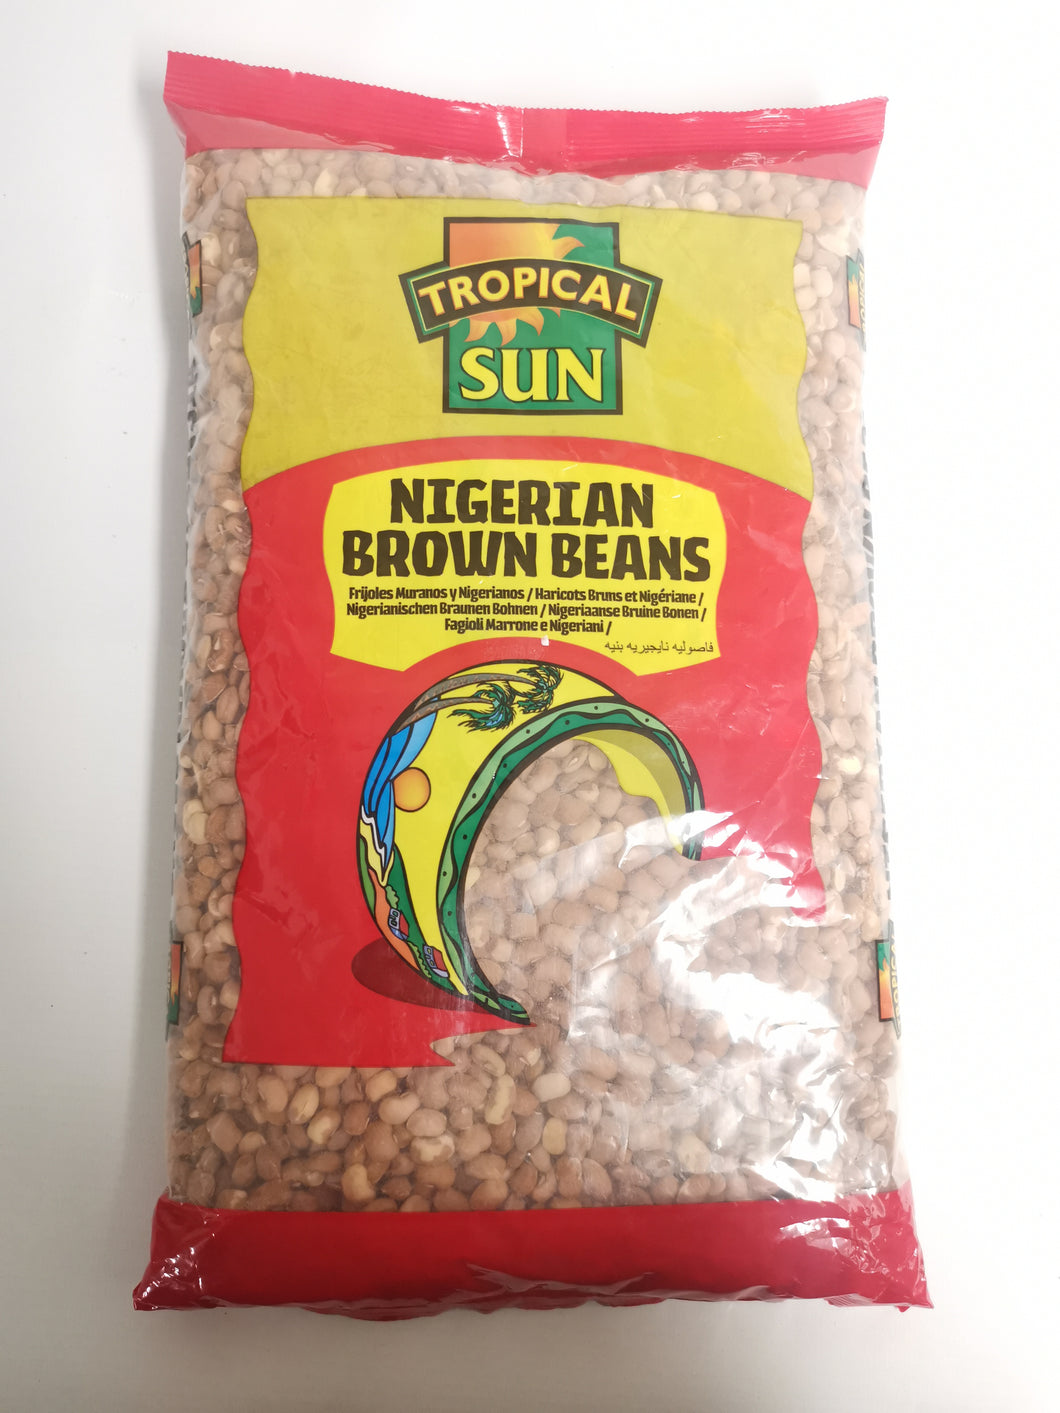 Tropical Sun Nigerian Brown Beans